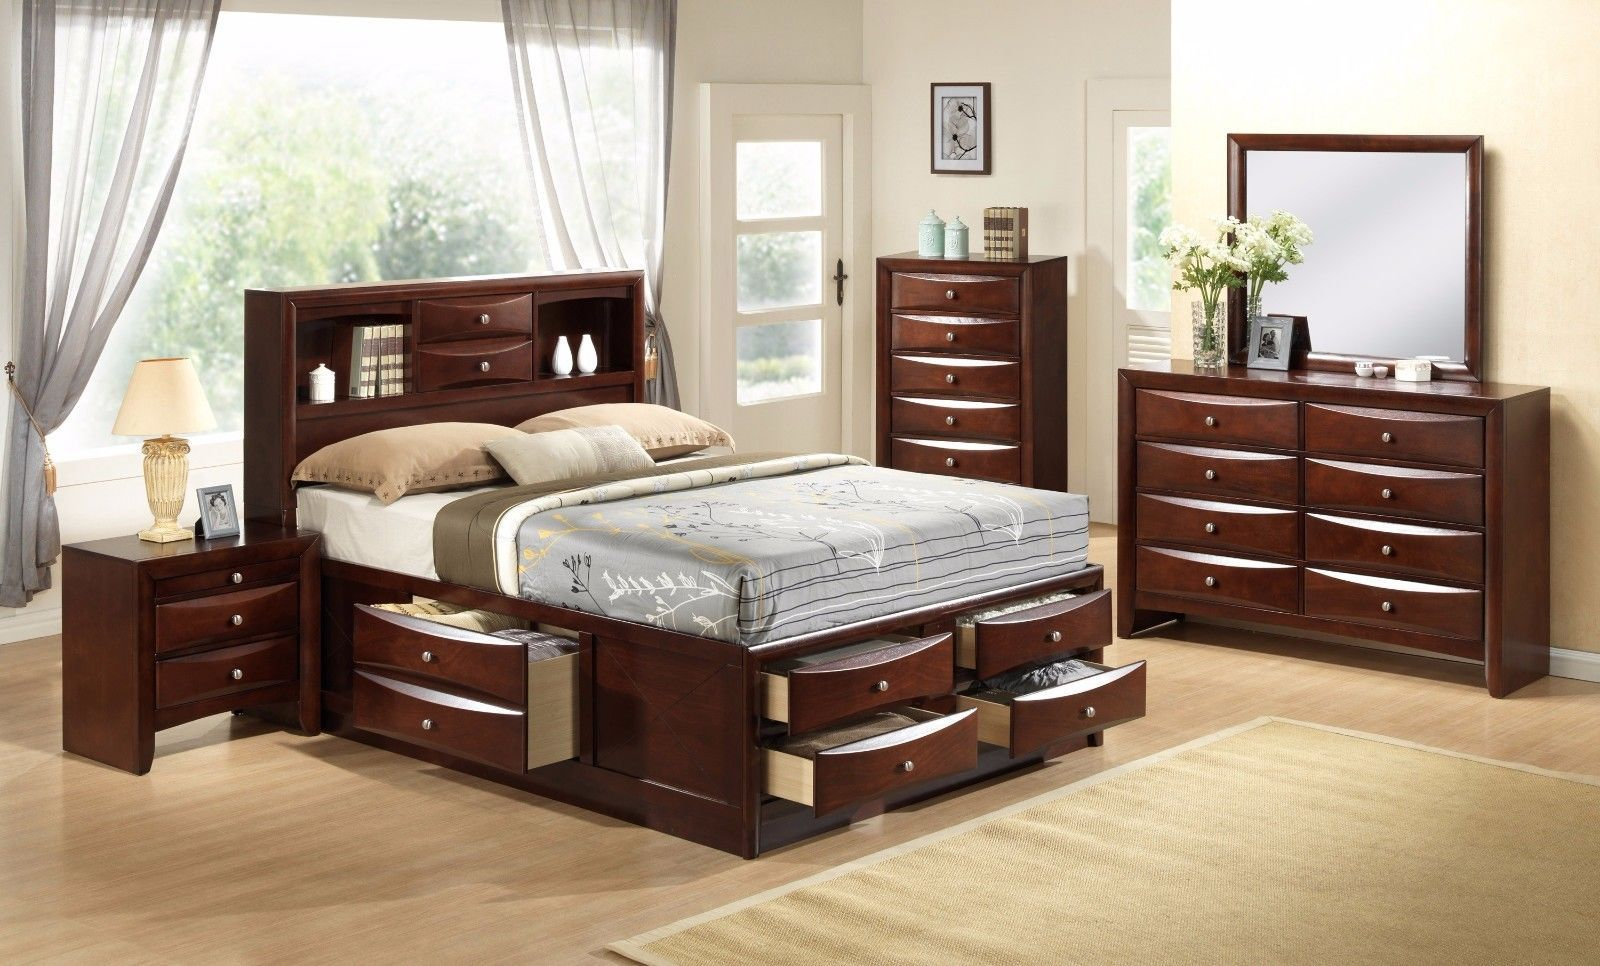 Crown Mark RB4255 Emily Storage Queen Size Bedroom Set 5pc. Contemporary Style